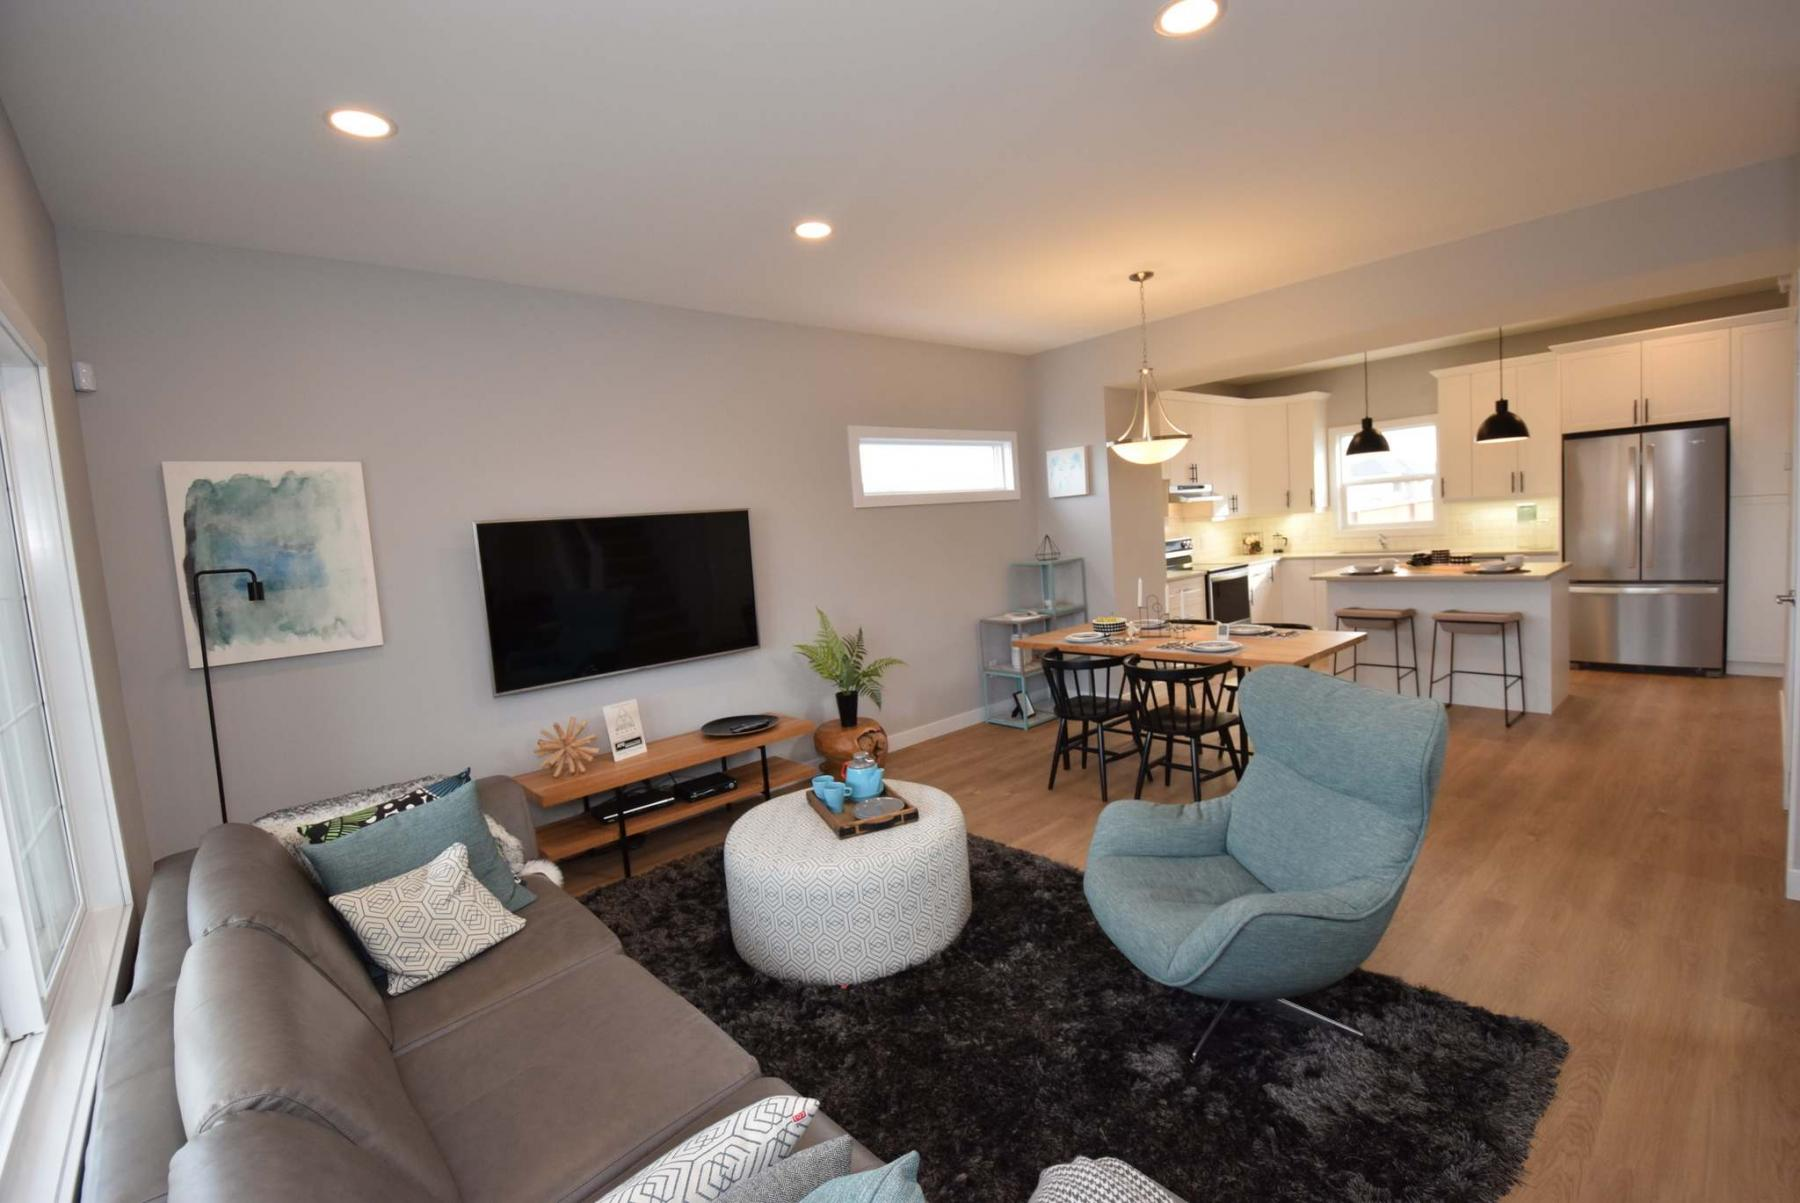 <p>Photos by Todd Lewys / Winnipeg Free Press</p><p>A nine-foot ceiling combines with an open-concept layout to make for a very functional great room in this Spring Parade of Homes entry.</p>